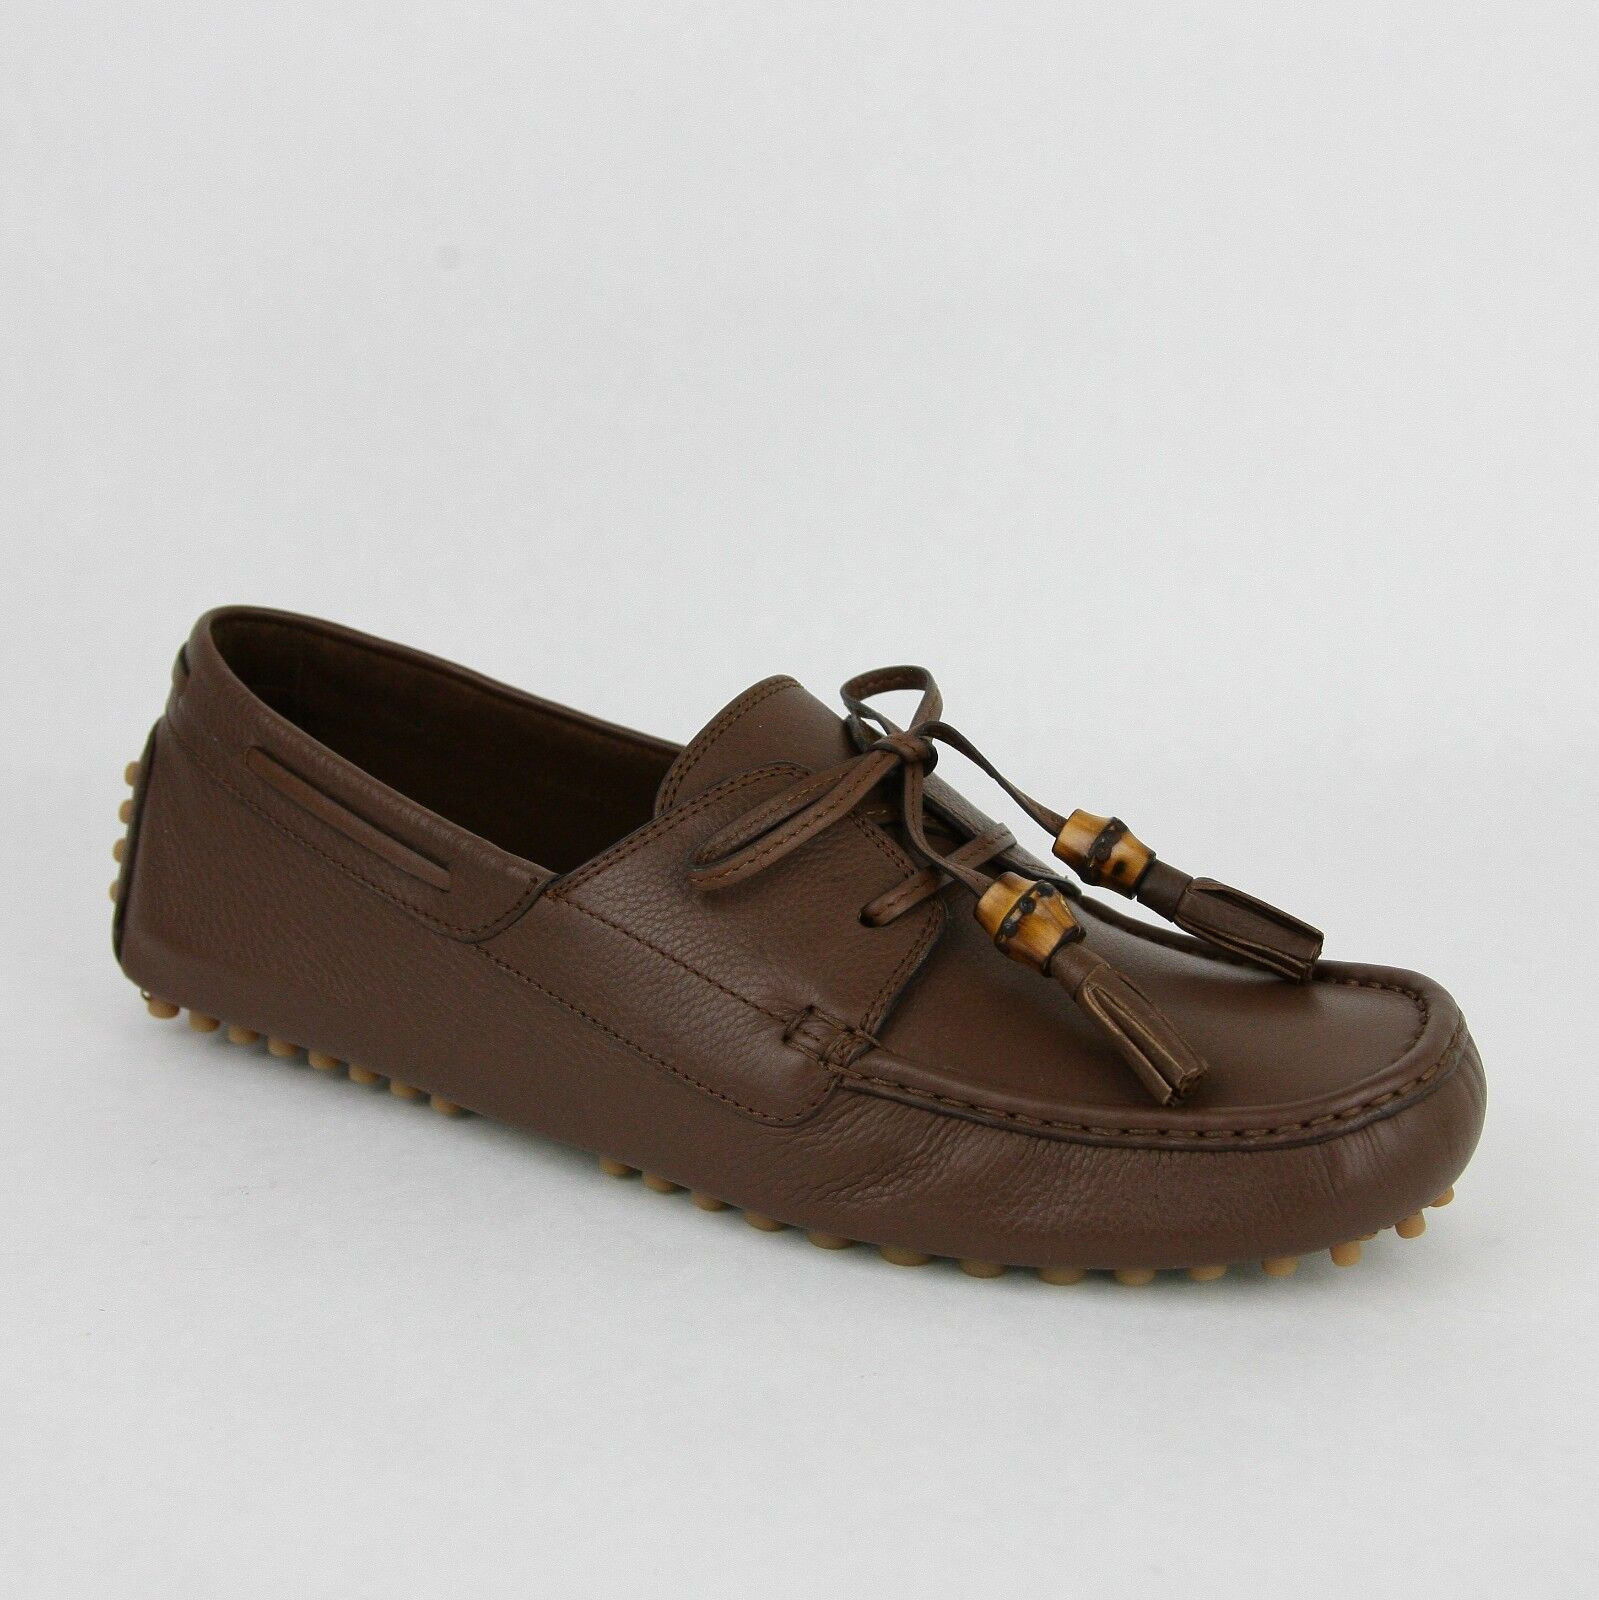 New Gucci Men's Brown Leather Bamboo Tassel Loafer Driver 367923 2138